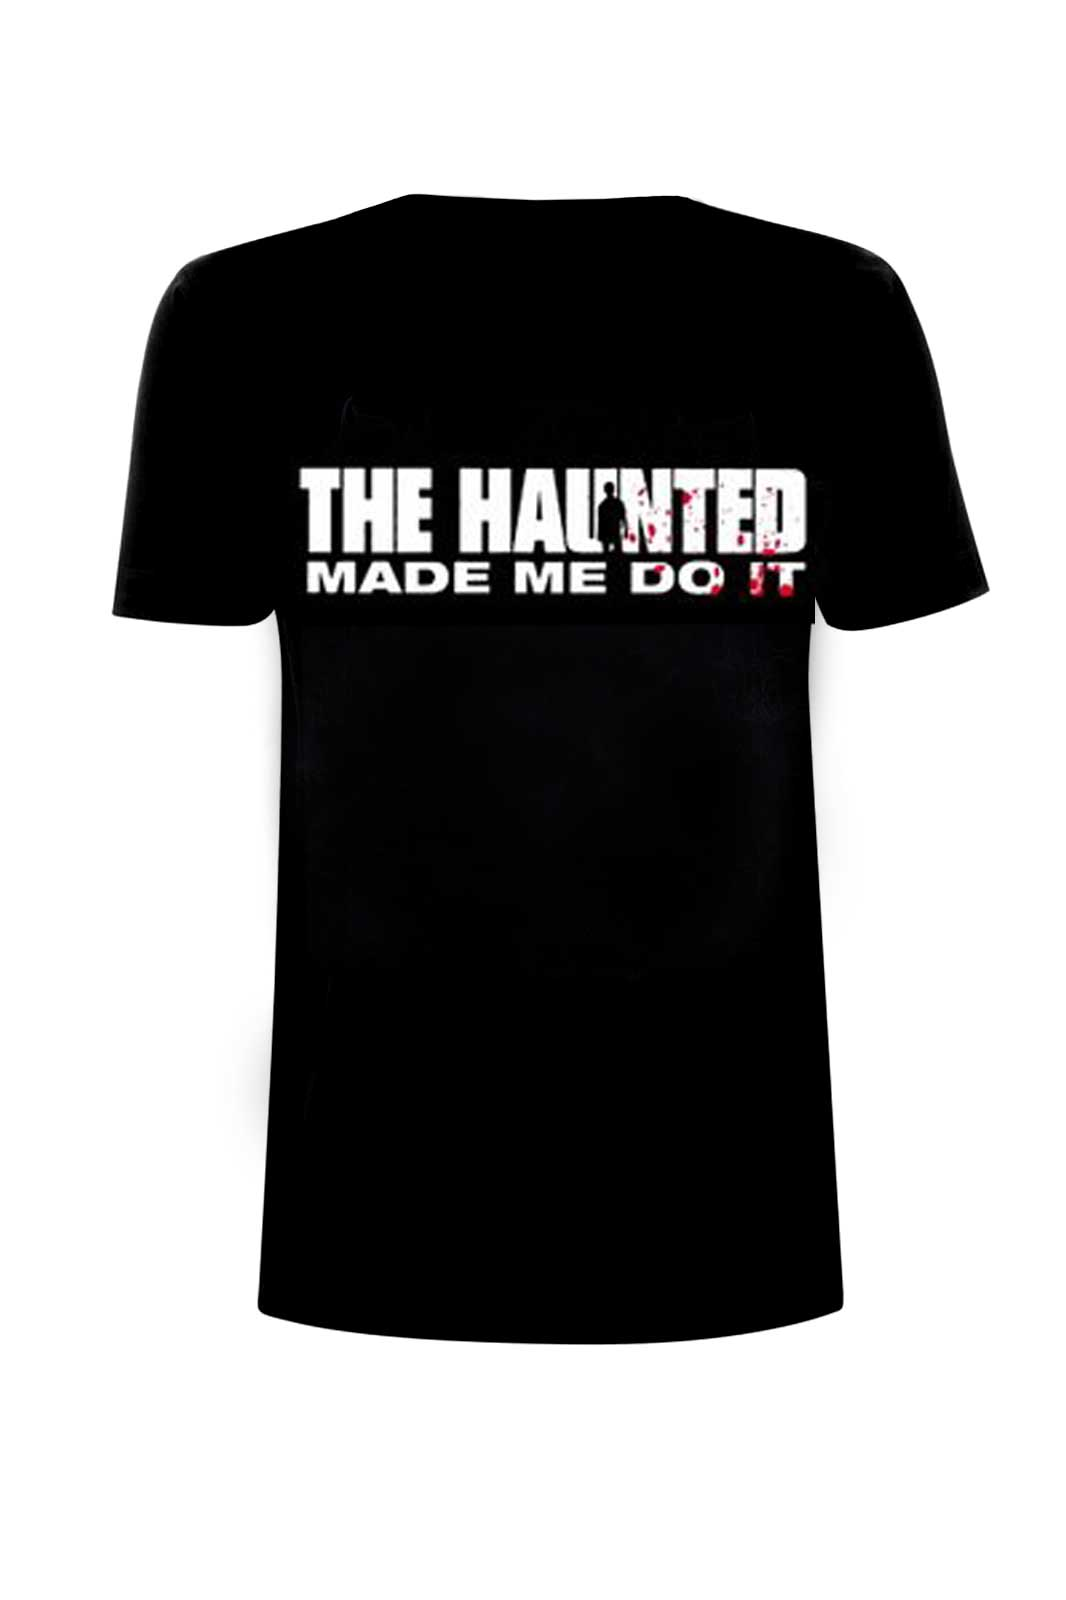 The Haunted Made Me Do It Tee